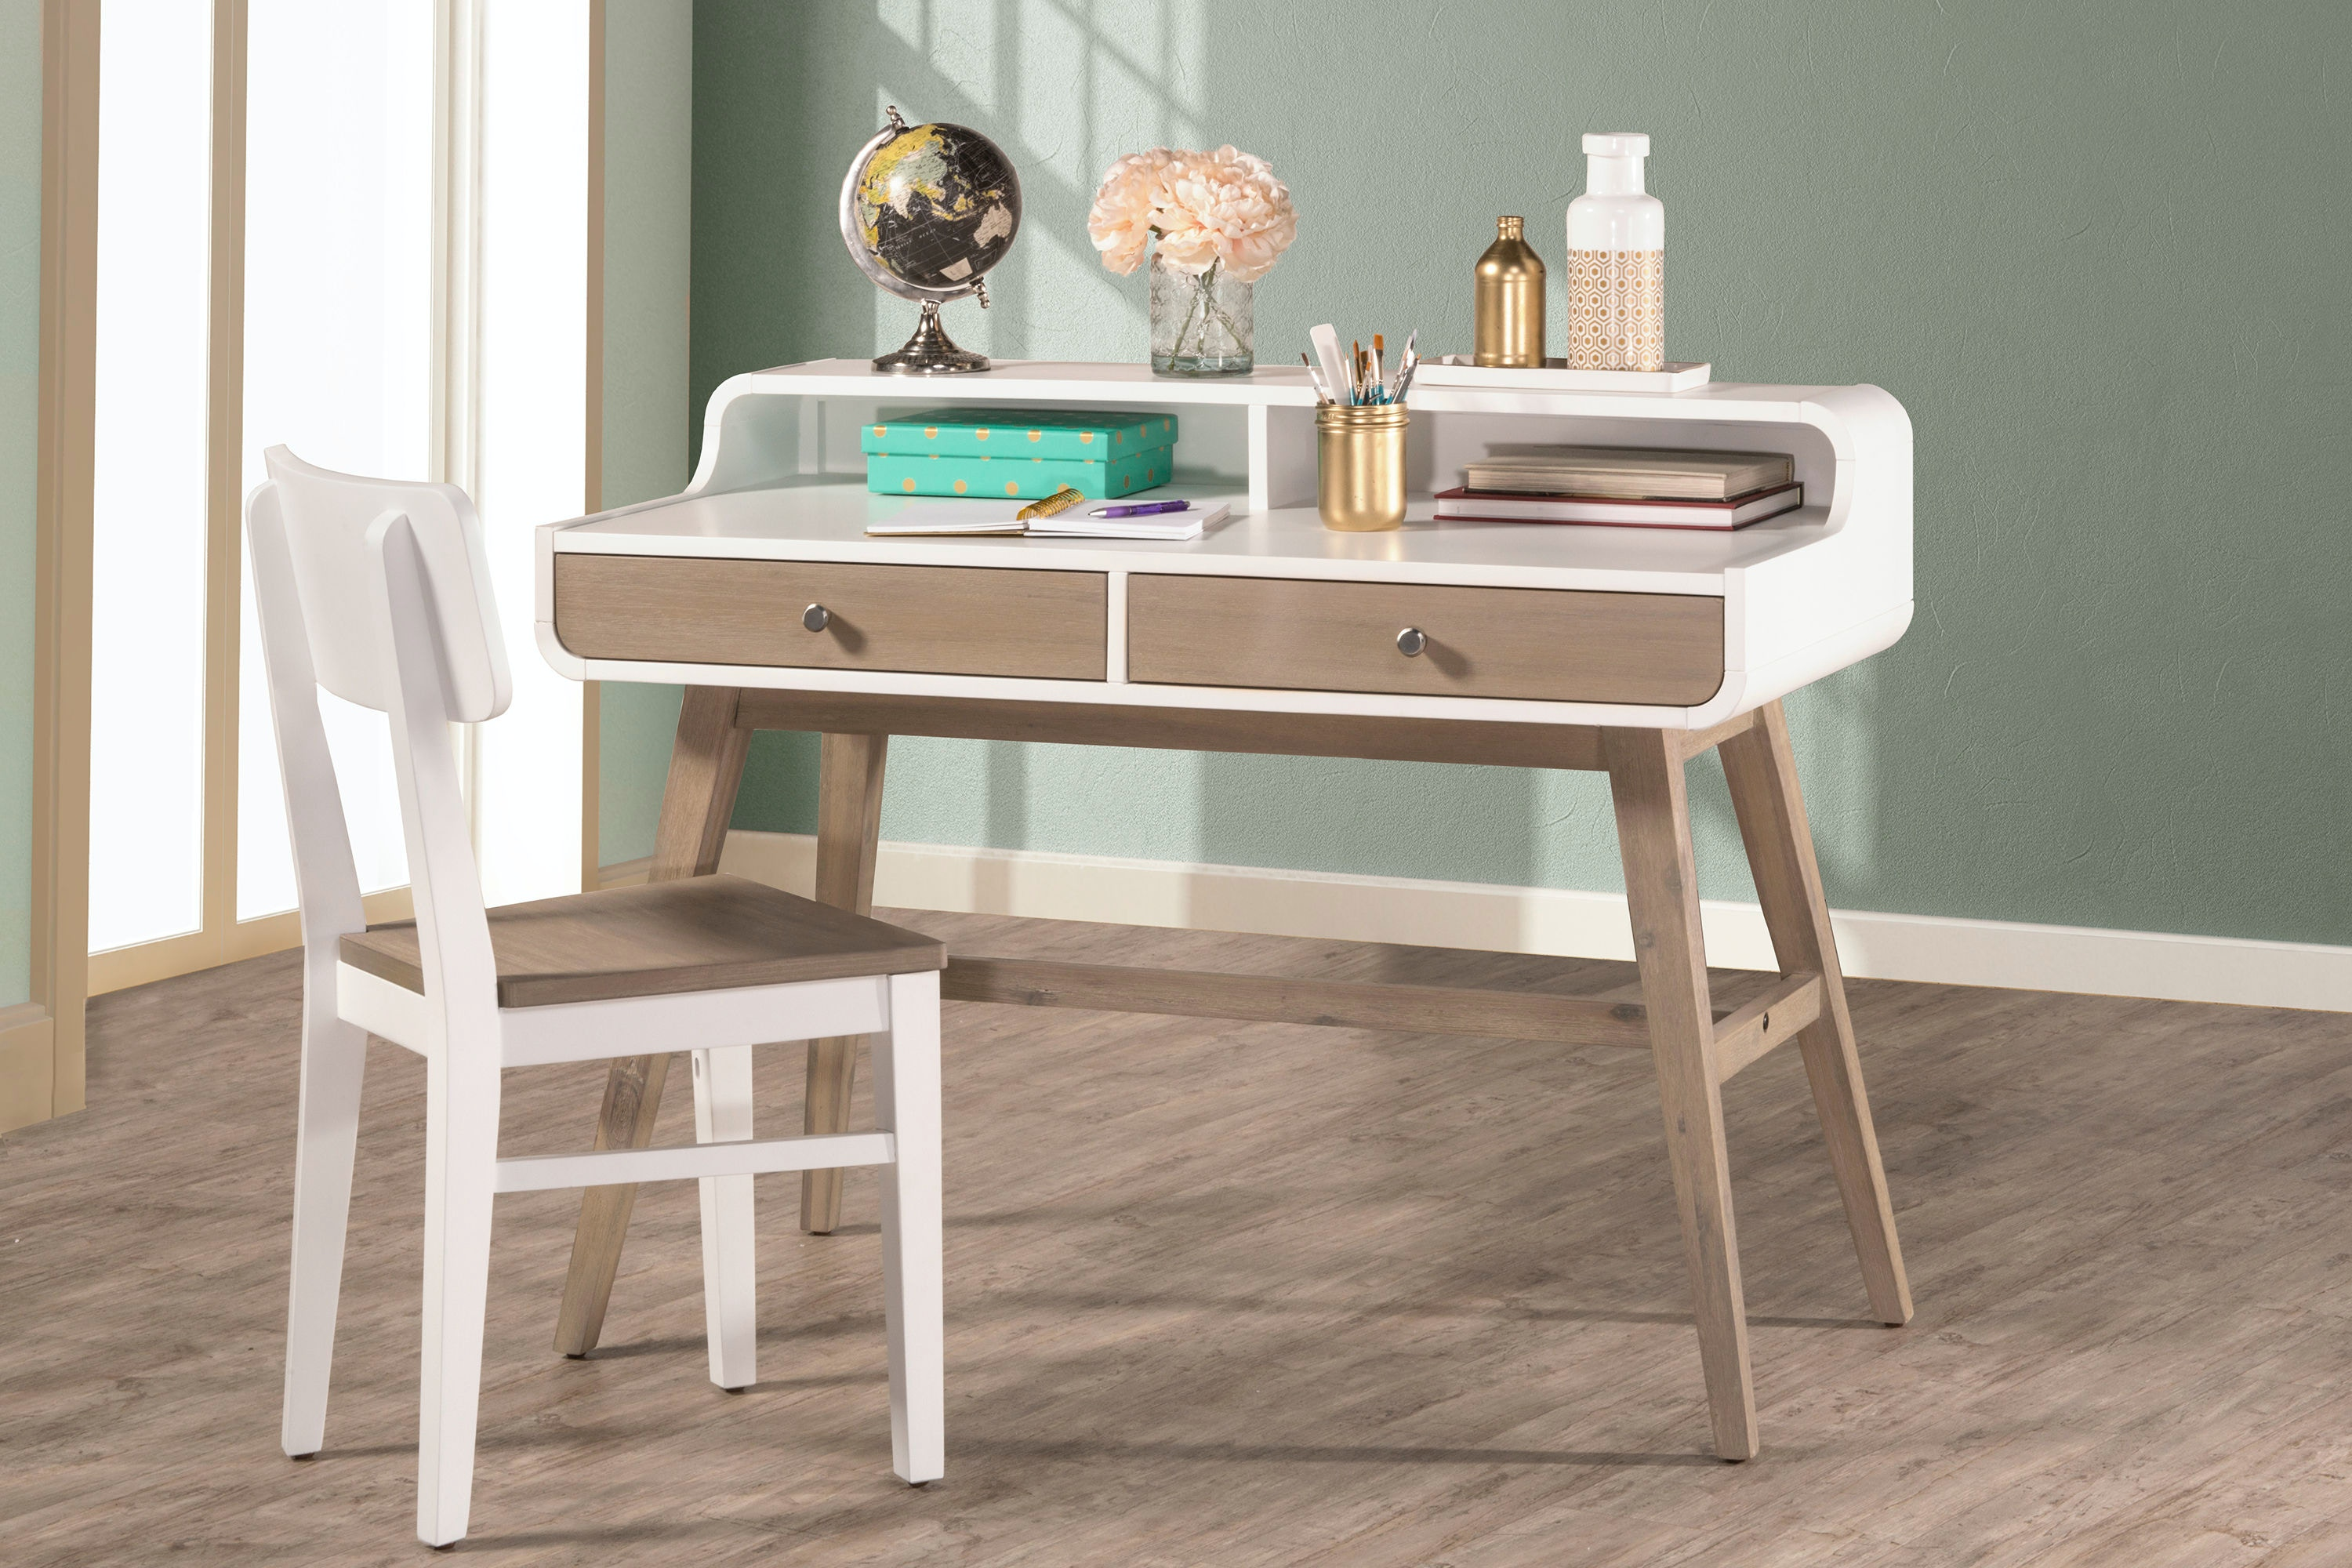 Attirant Hillsdale Kids And Teen Youth East End Desk 7100 779 At Carol House  Furniture